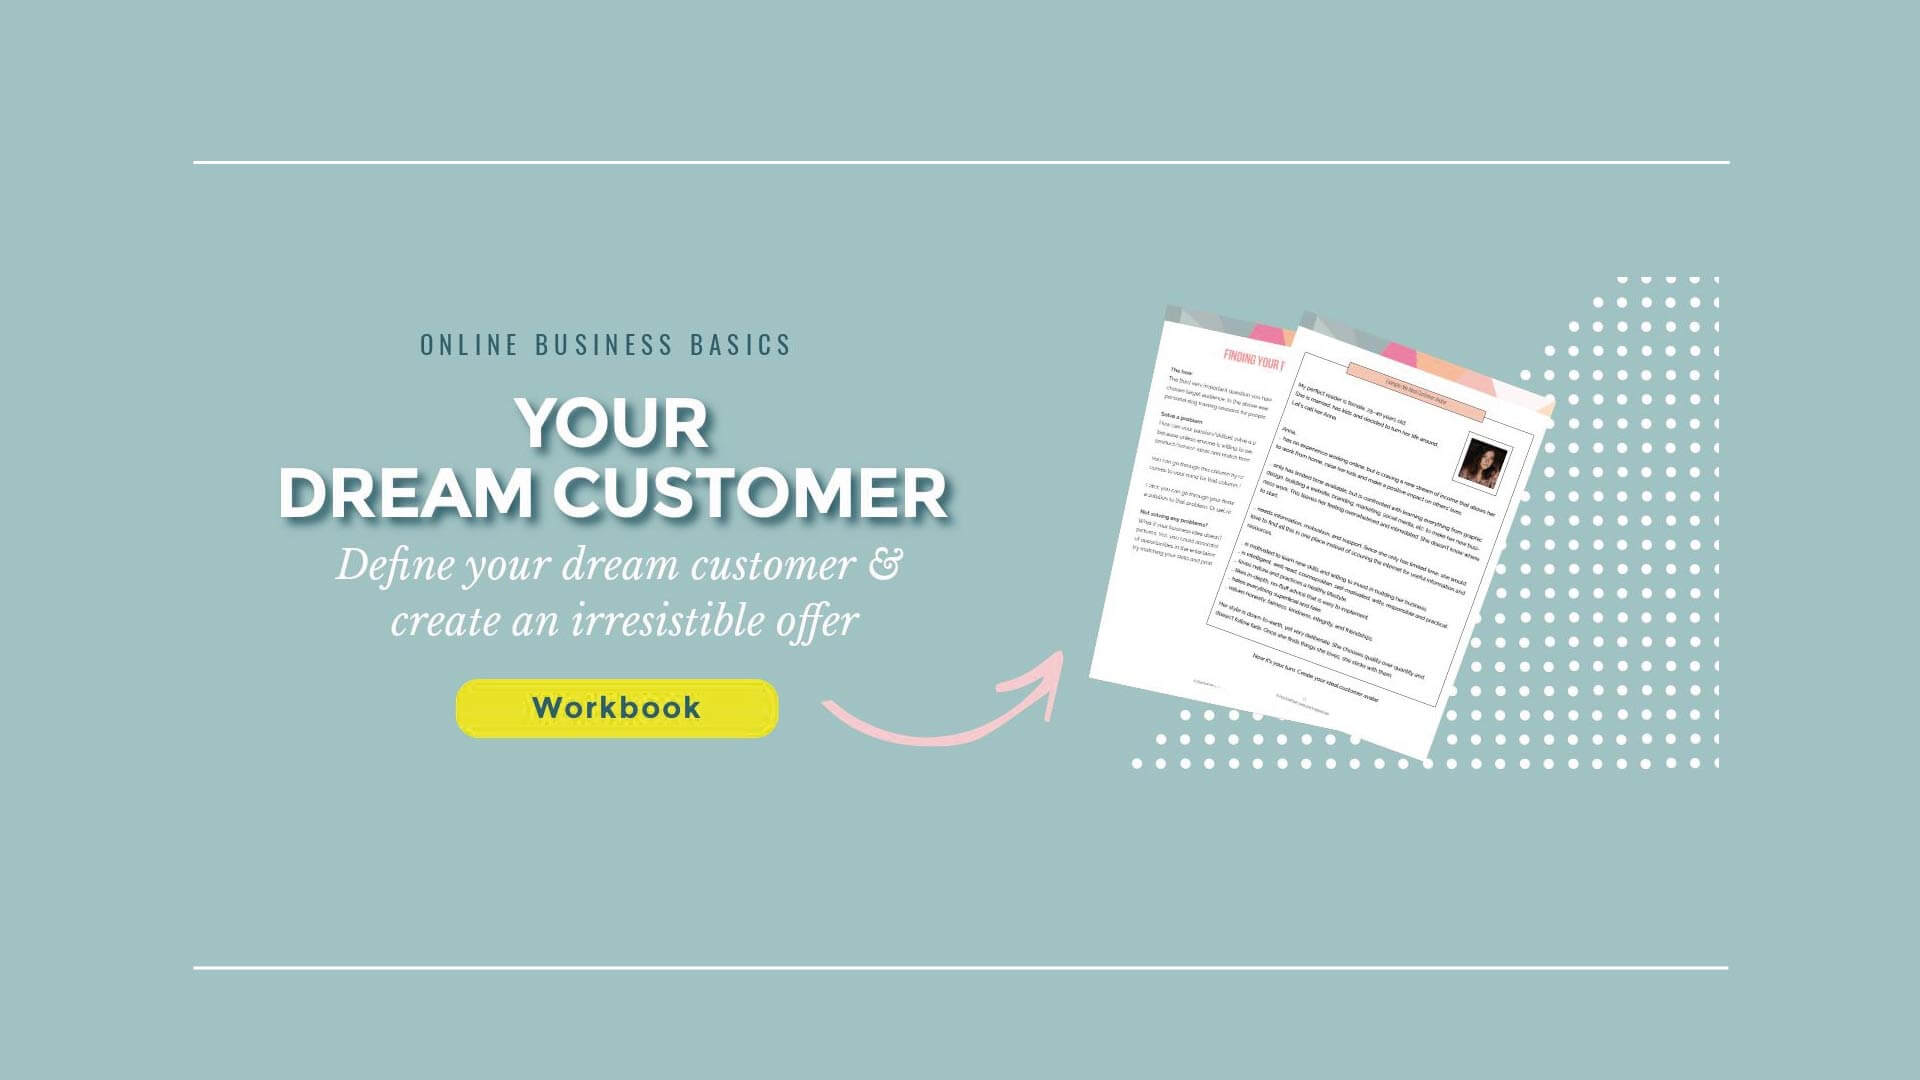 Work-From-Home Made Easy - Dream Customer